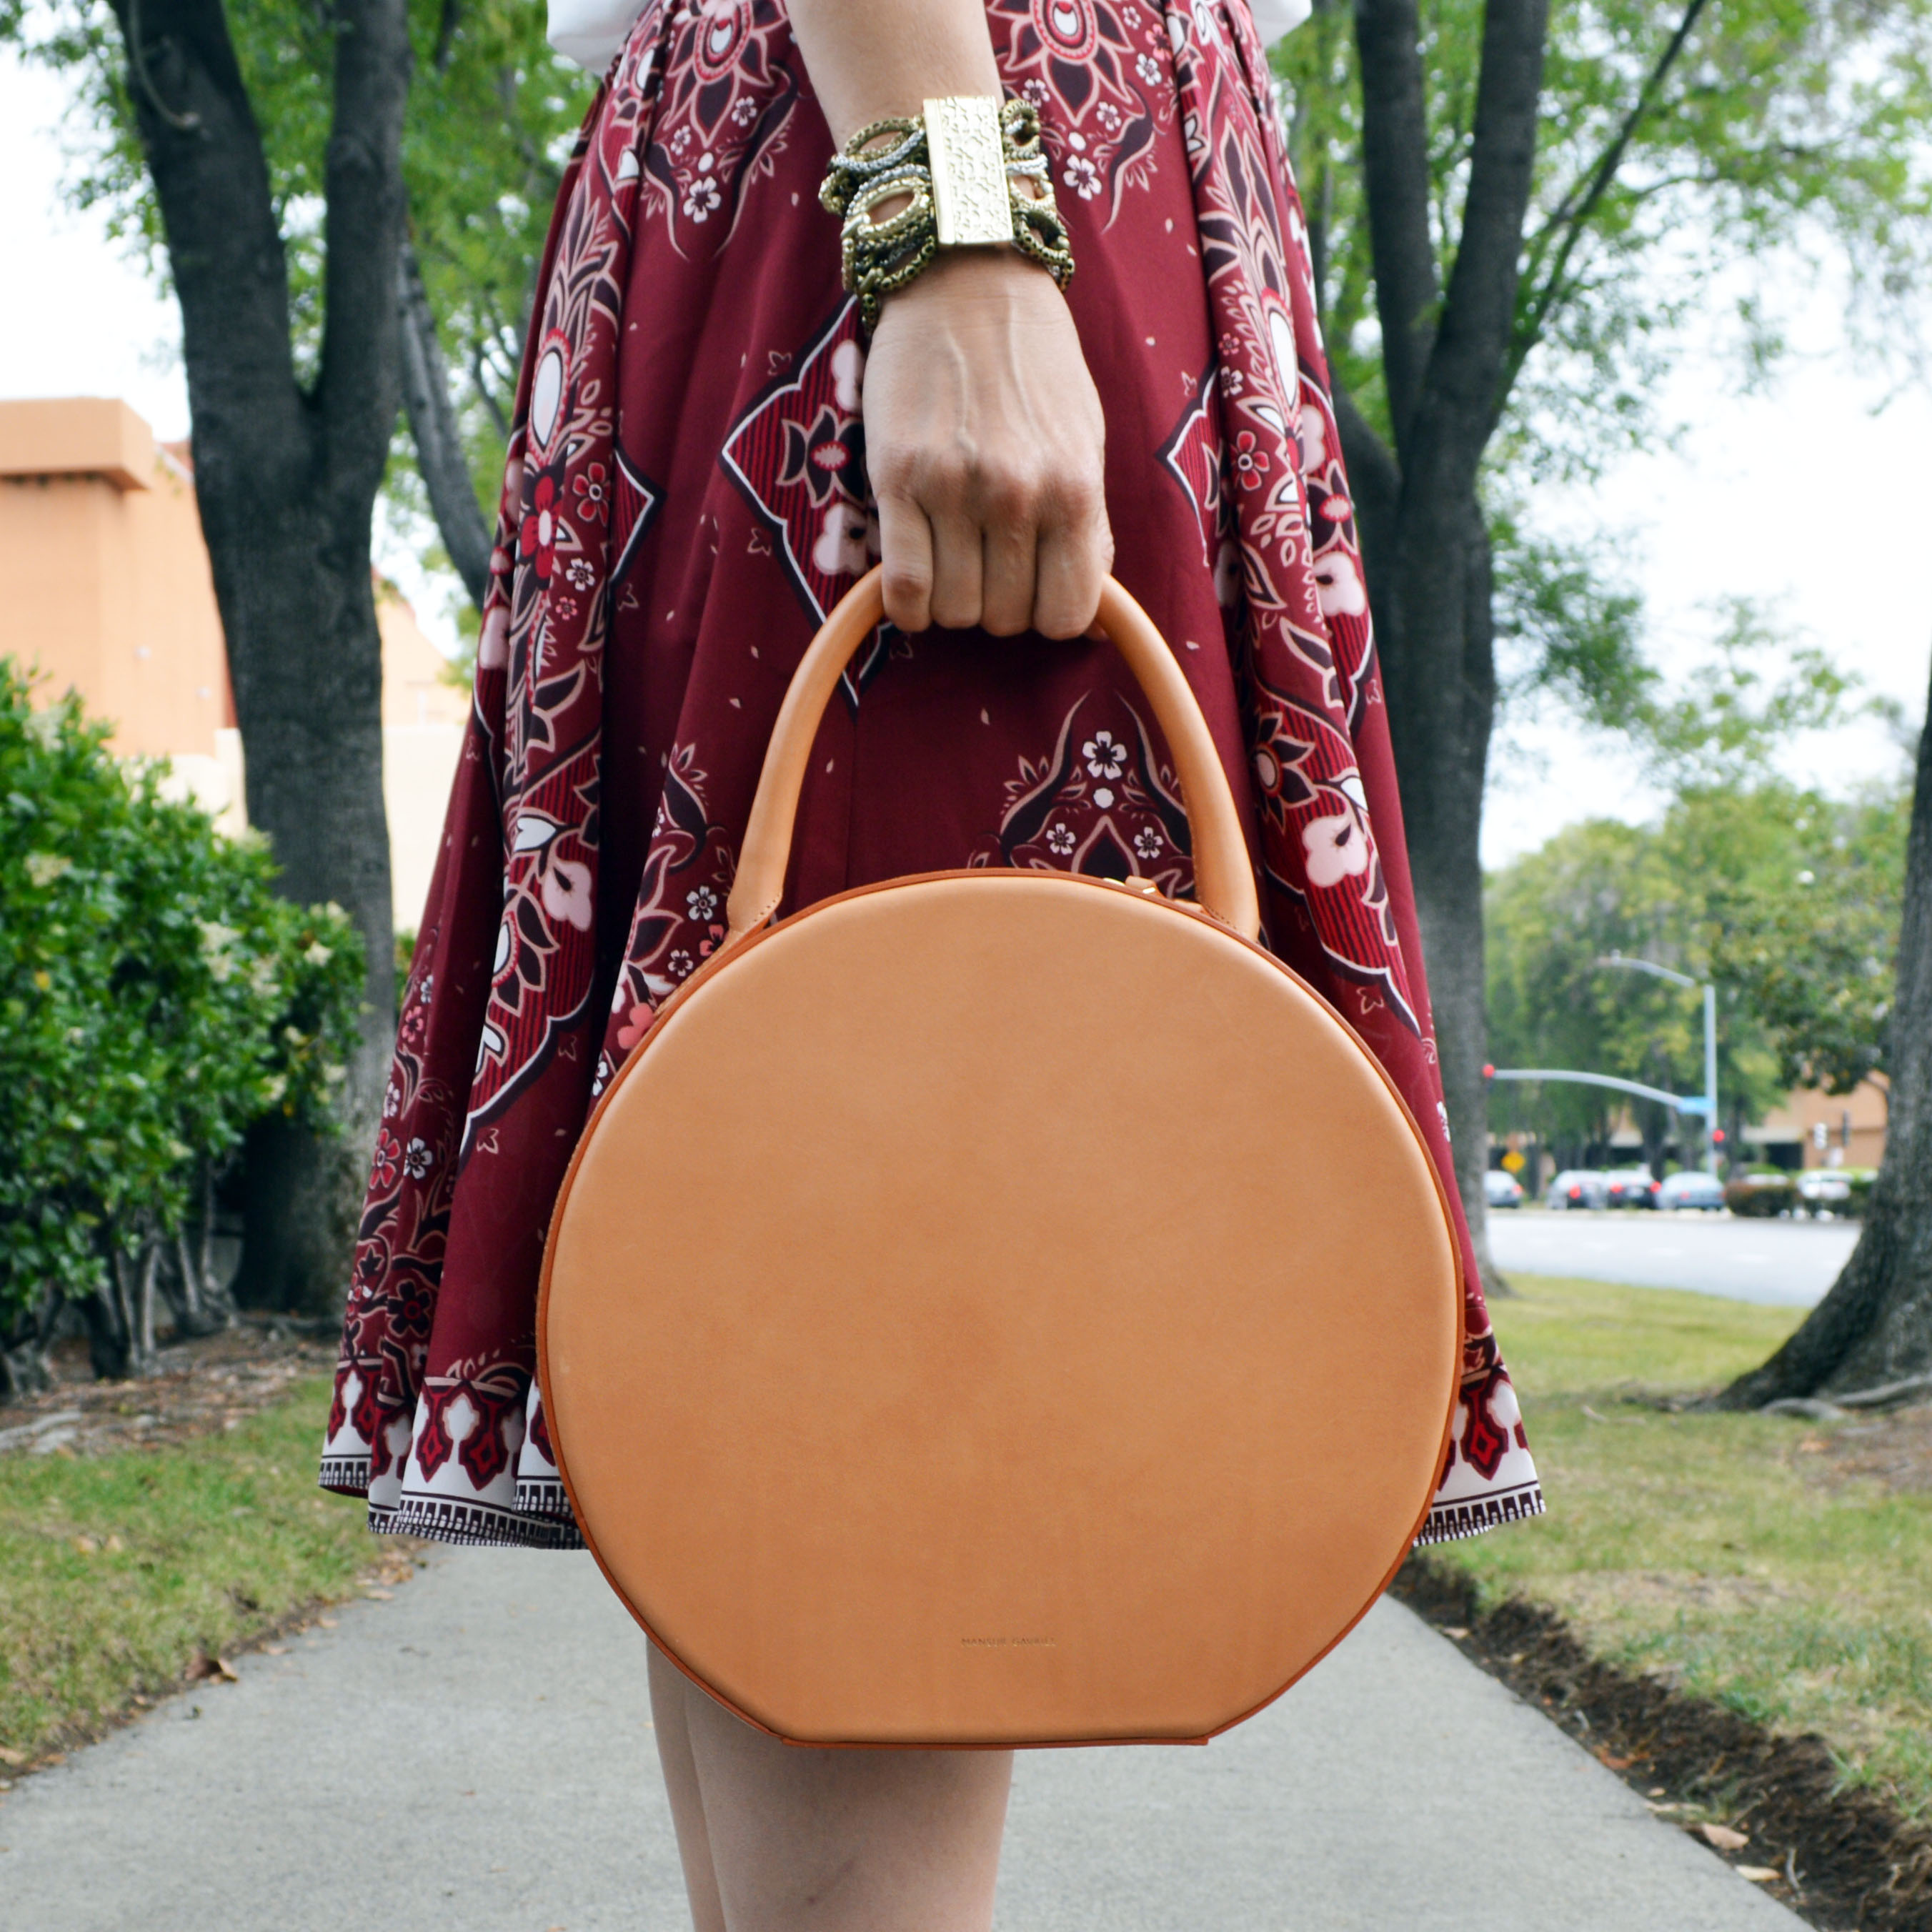 mansur gavriel small circle bag